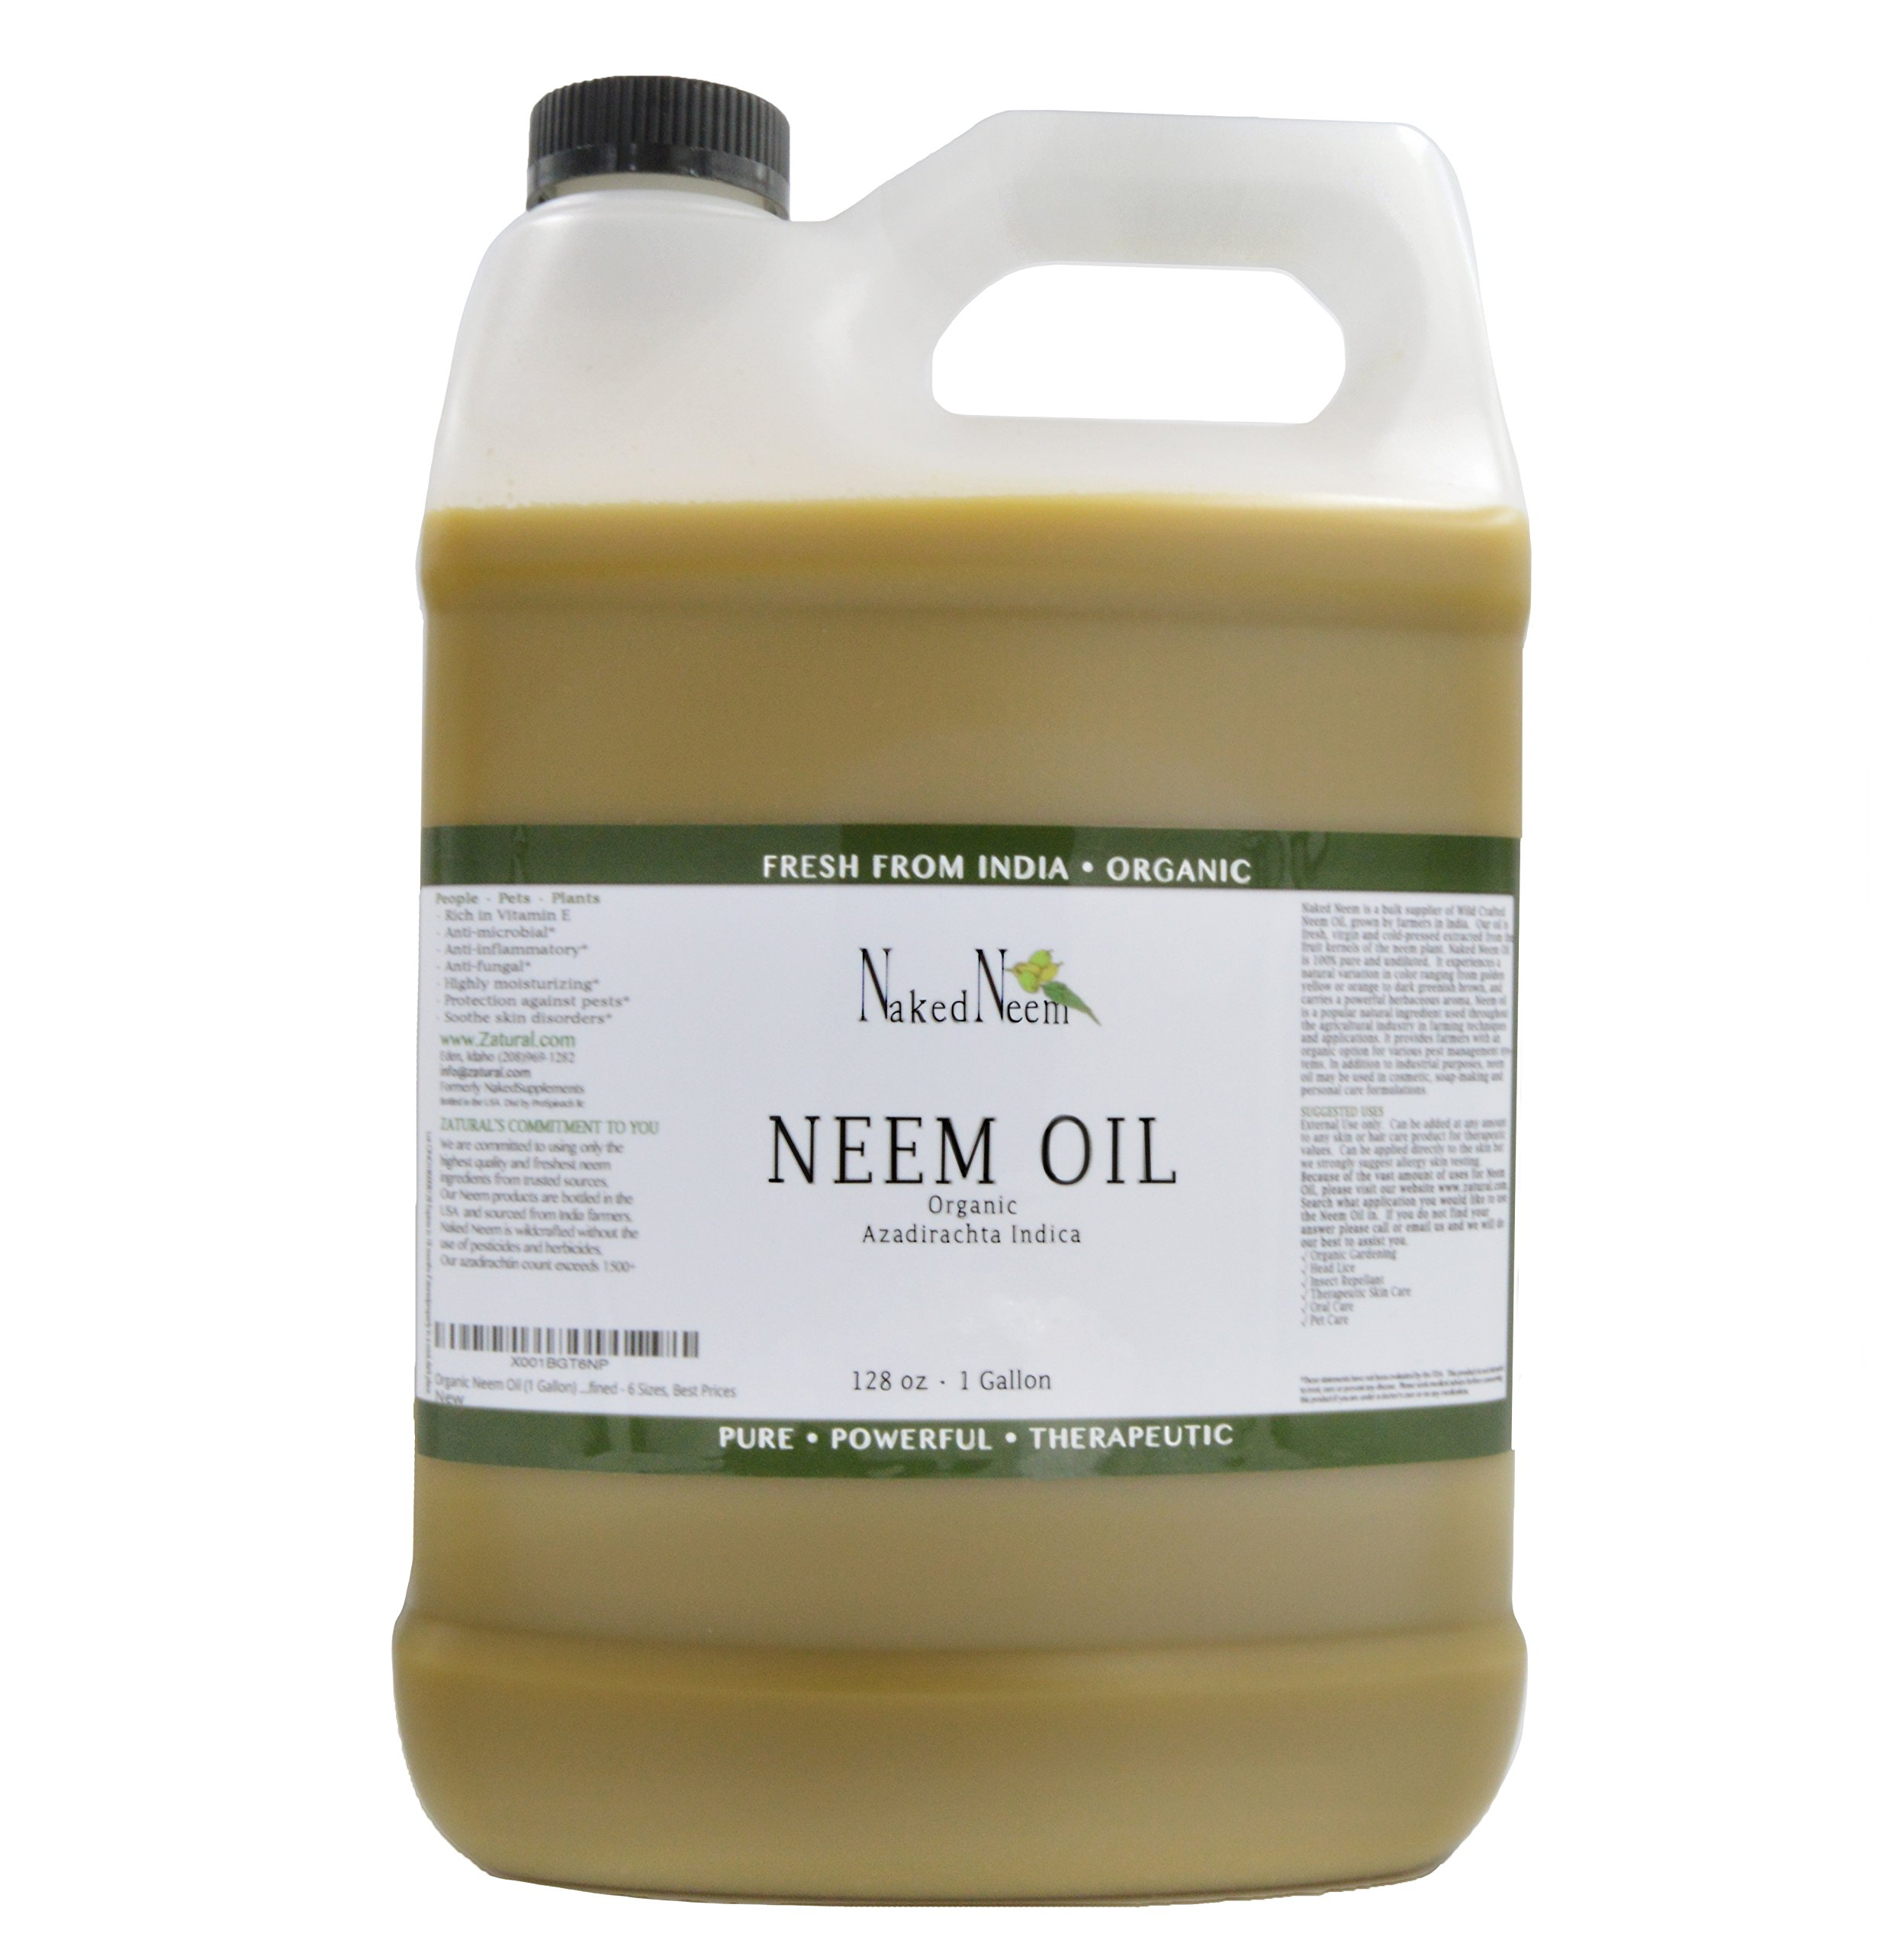 Zatural Organic Virgin Neem Oil 1 Gallon: 100% Natural Pure Cold Pressed No Additives, Unrefined Concentrate for Body and Skin, Pets, and Plants or Garden